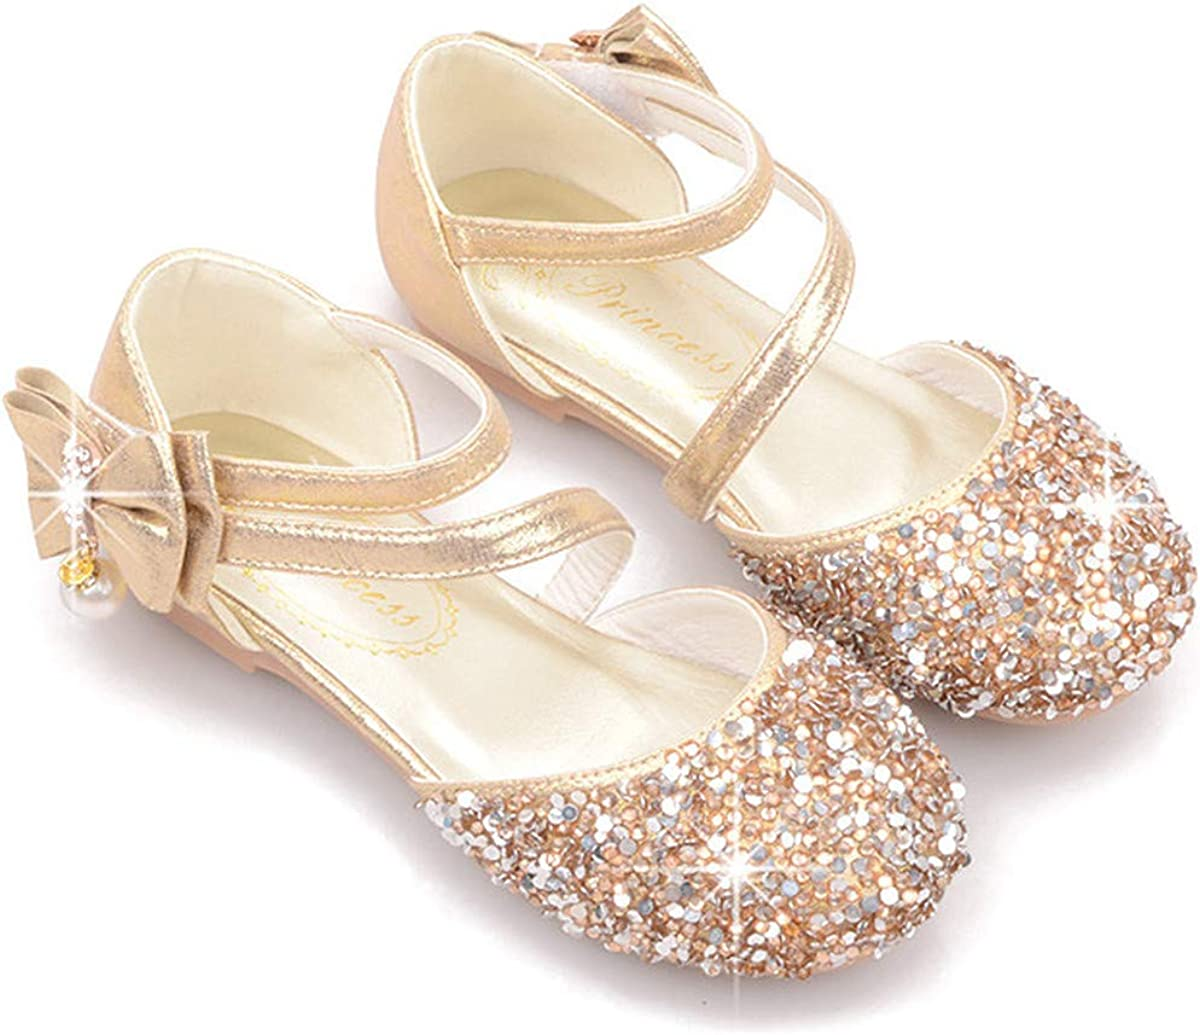 SHINUOER Girls Glitter Mary Jane Shoes Round Toe Ankle Strap Bow Flower Girls Wedding Party Dress Princess Flats